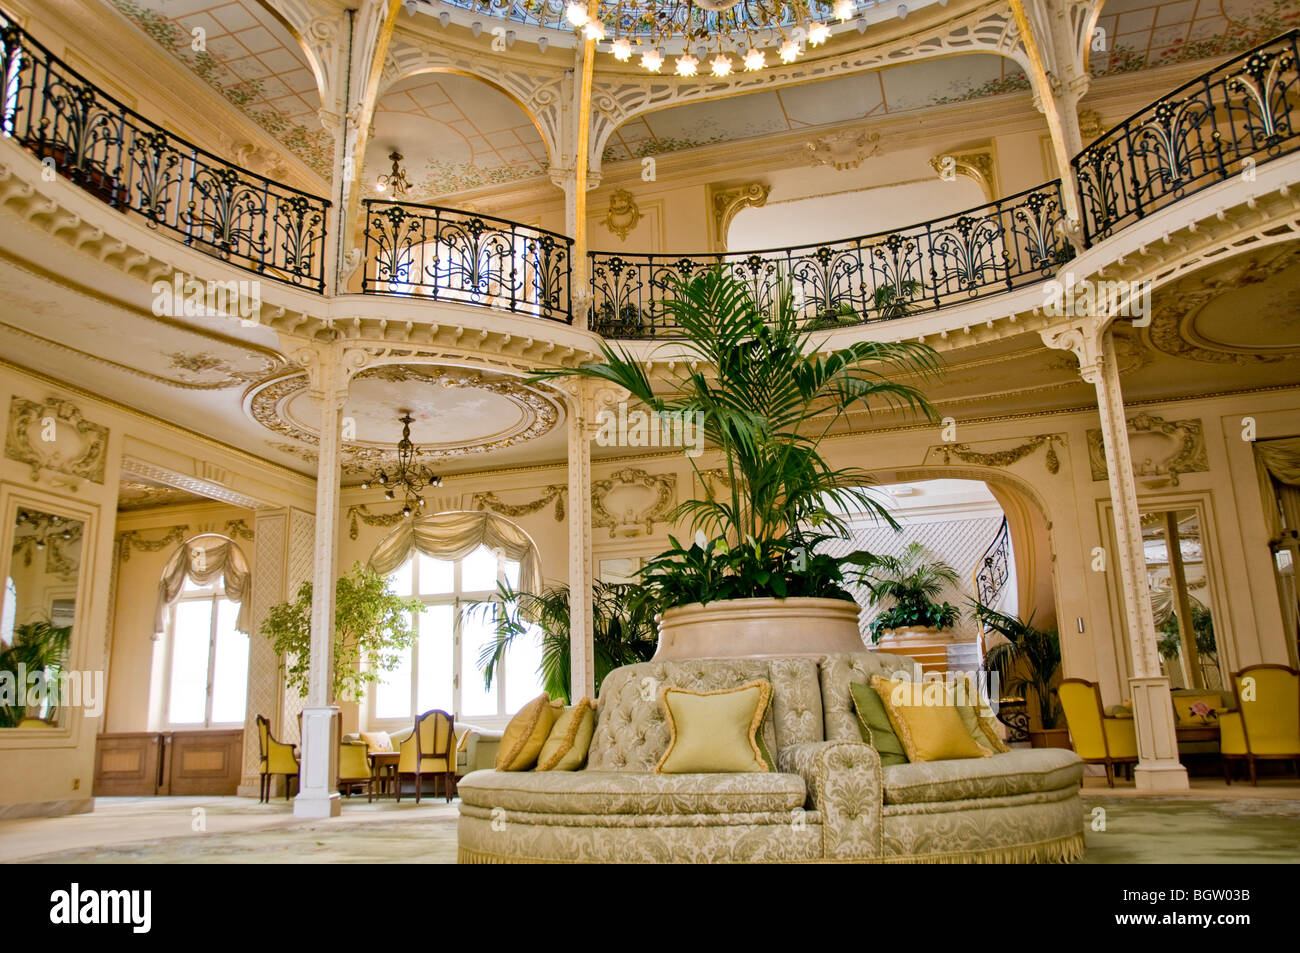 Monte carlo monaco luxury travel hermitage hotel for Eifel design hotel